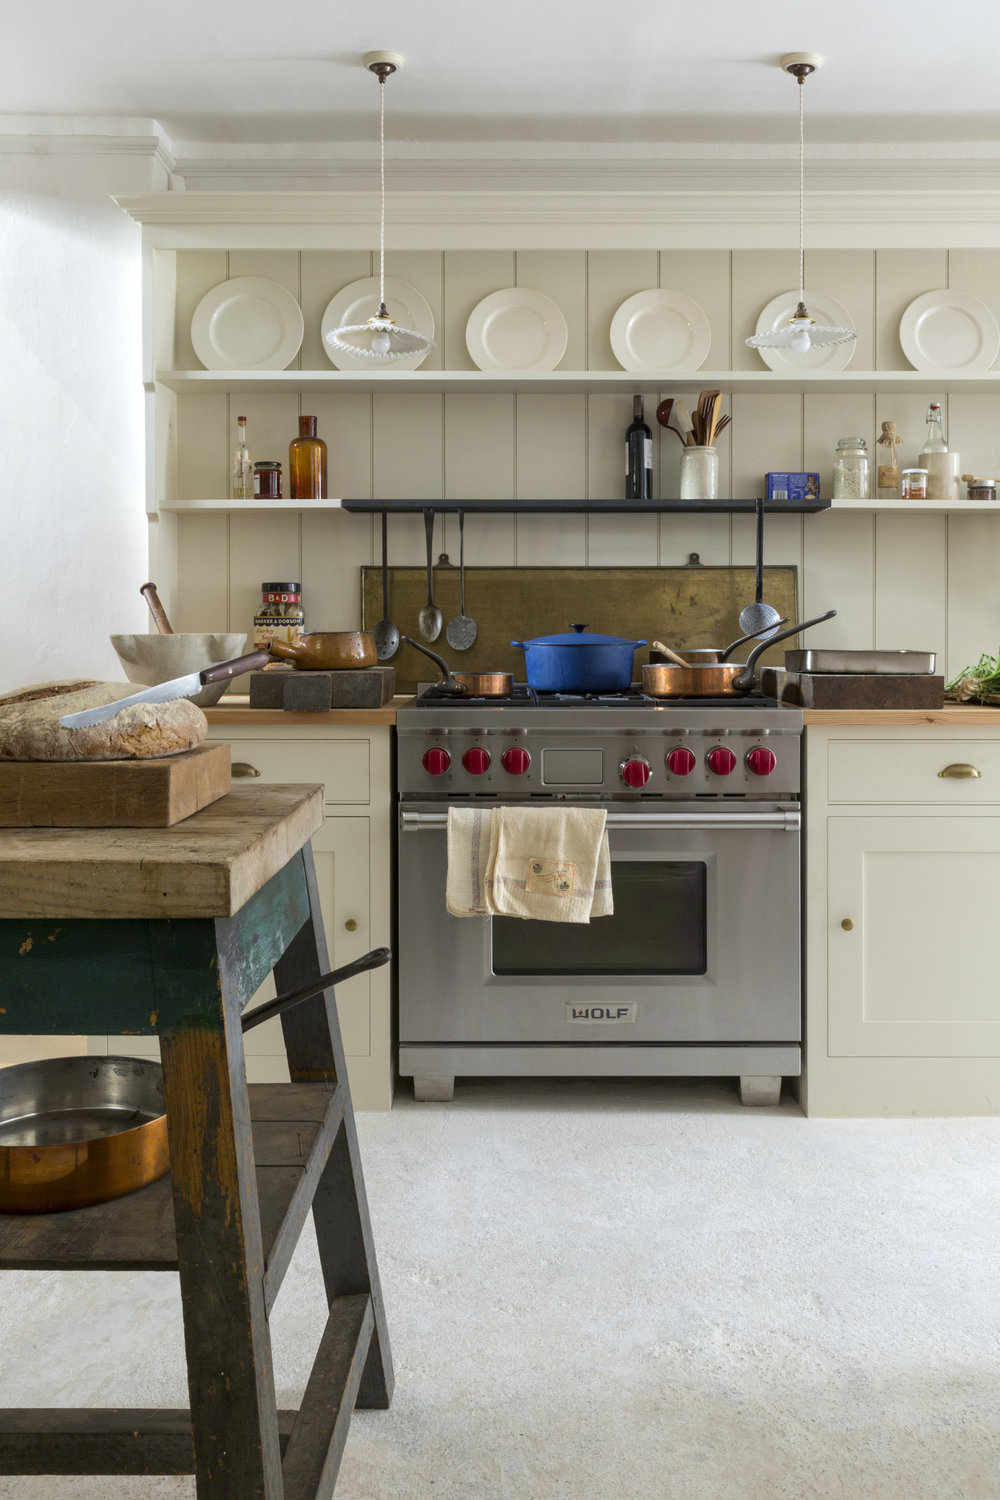 plain-english-kitchen-at-howe-london-8-1466x2199.jpg